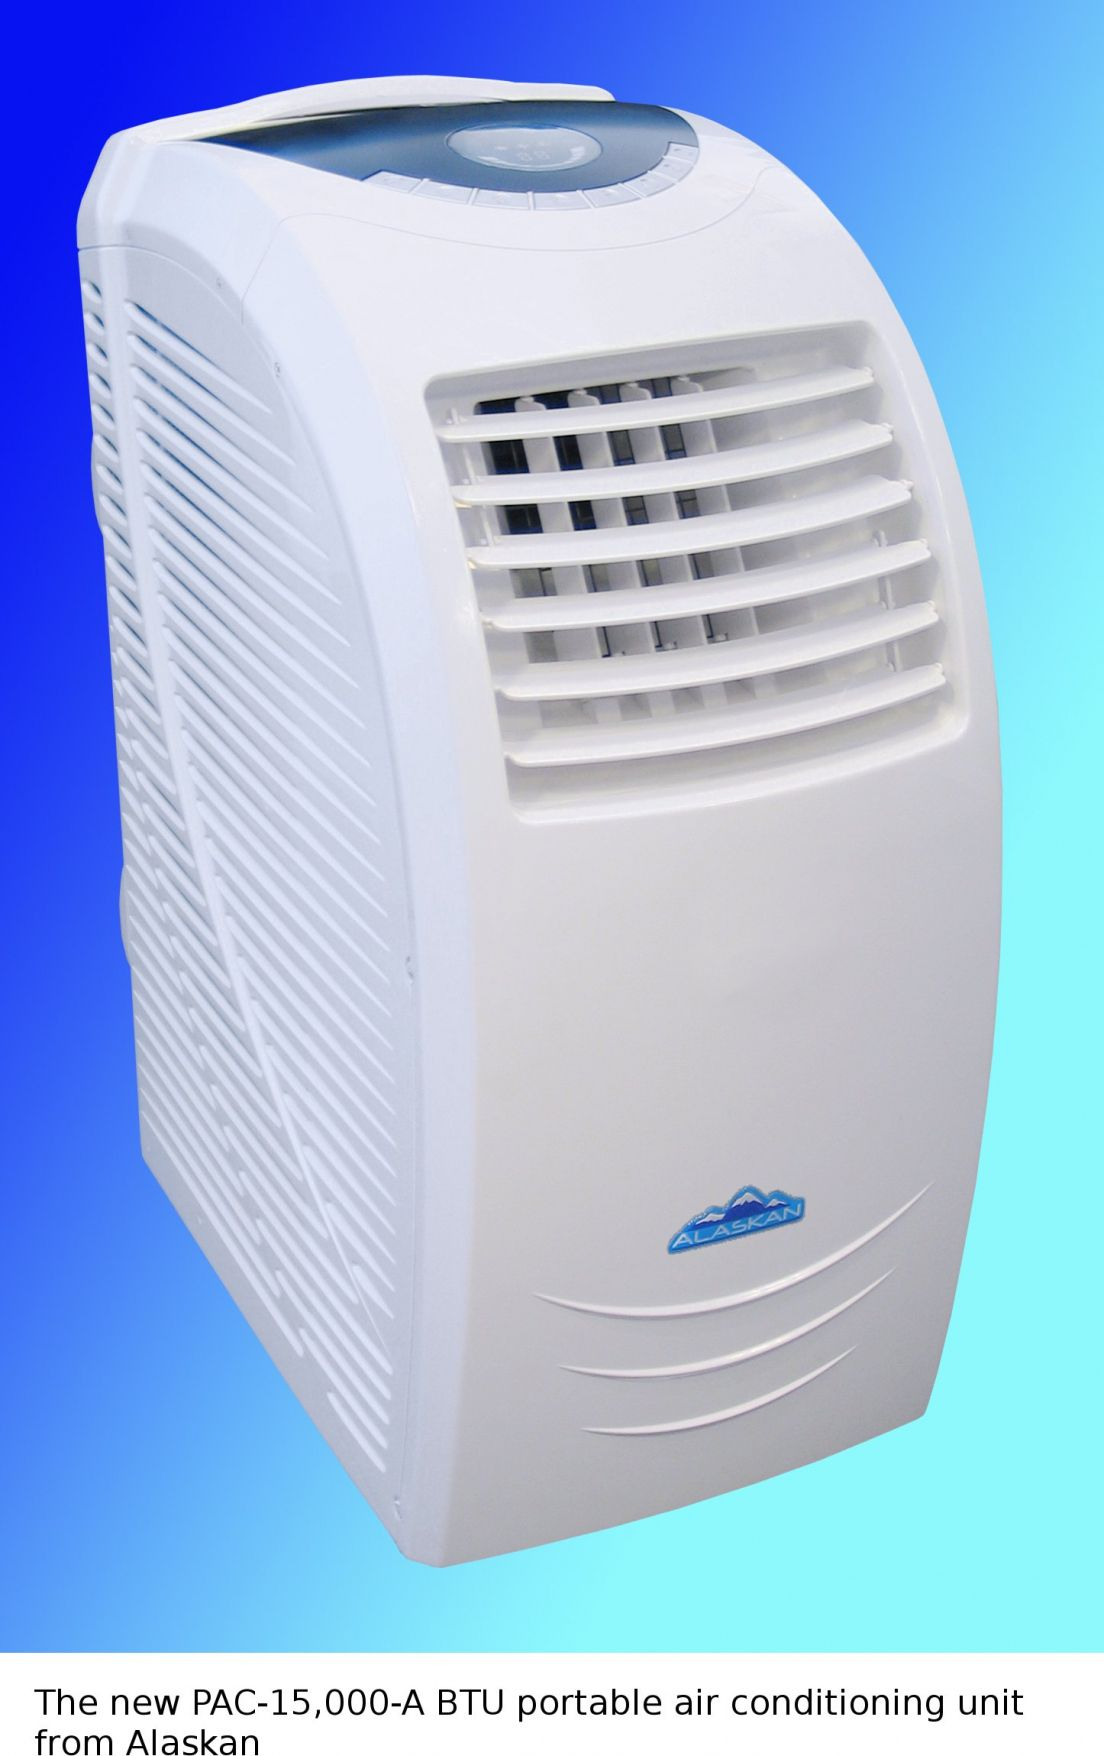 Luxury Small Air Conditioning Units for the Home Check